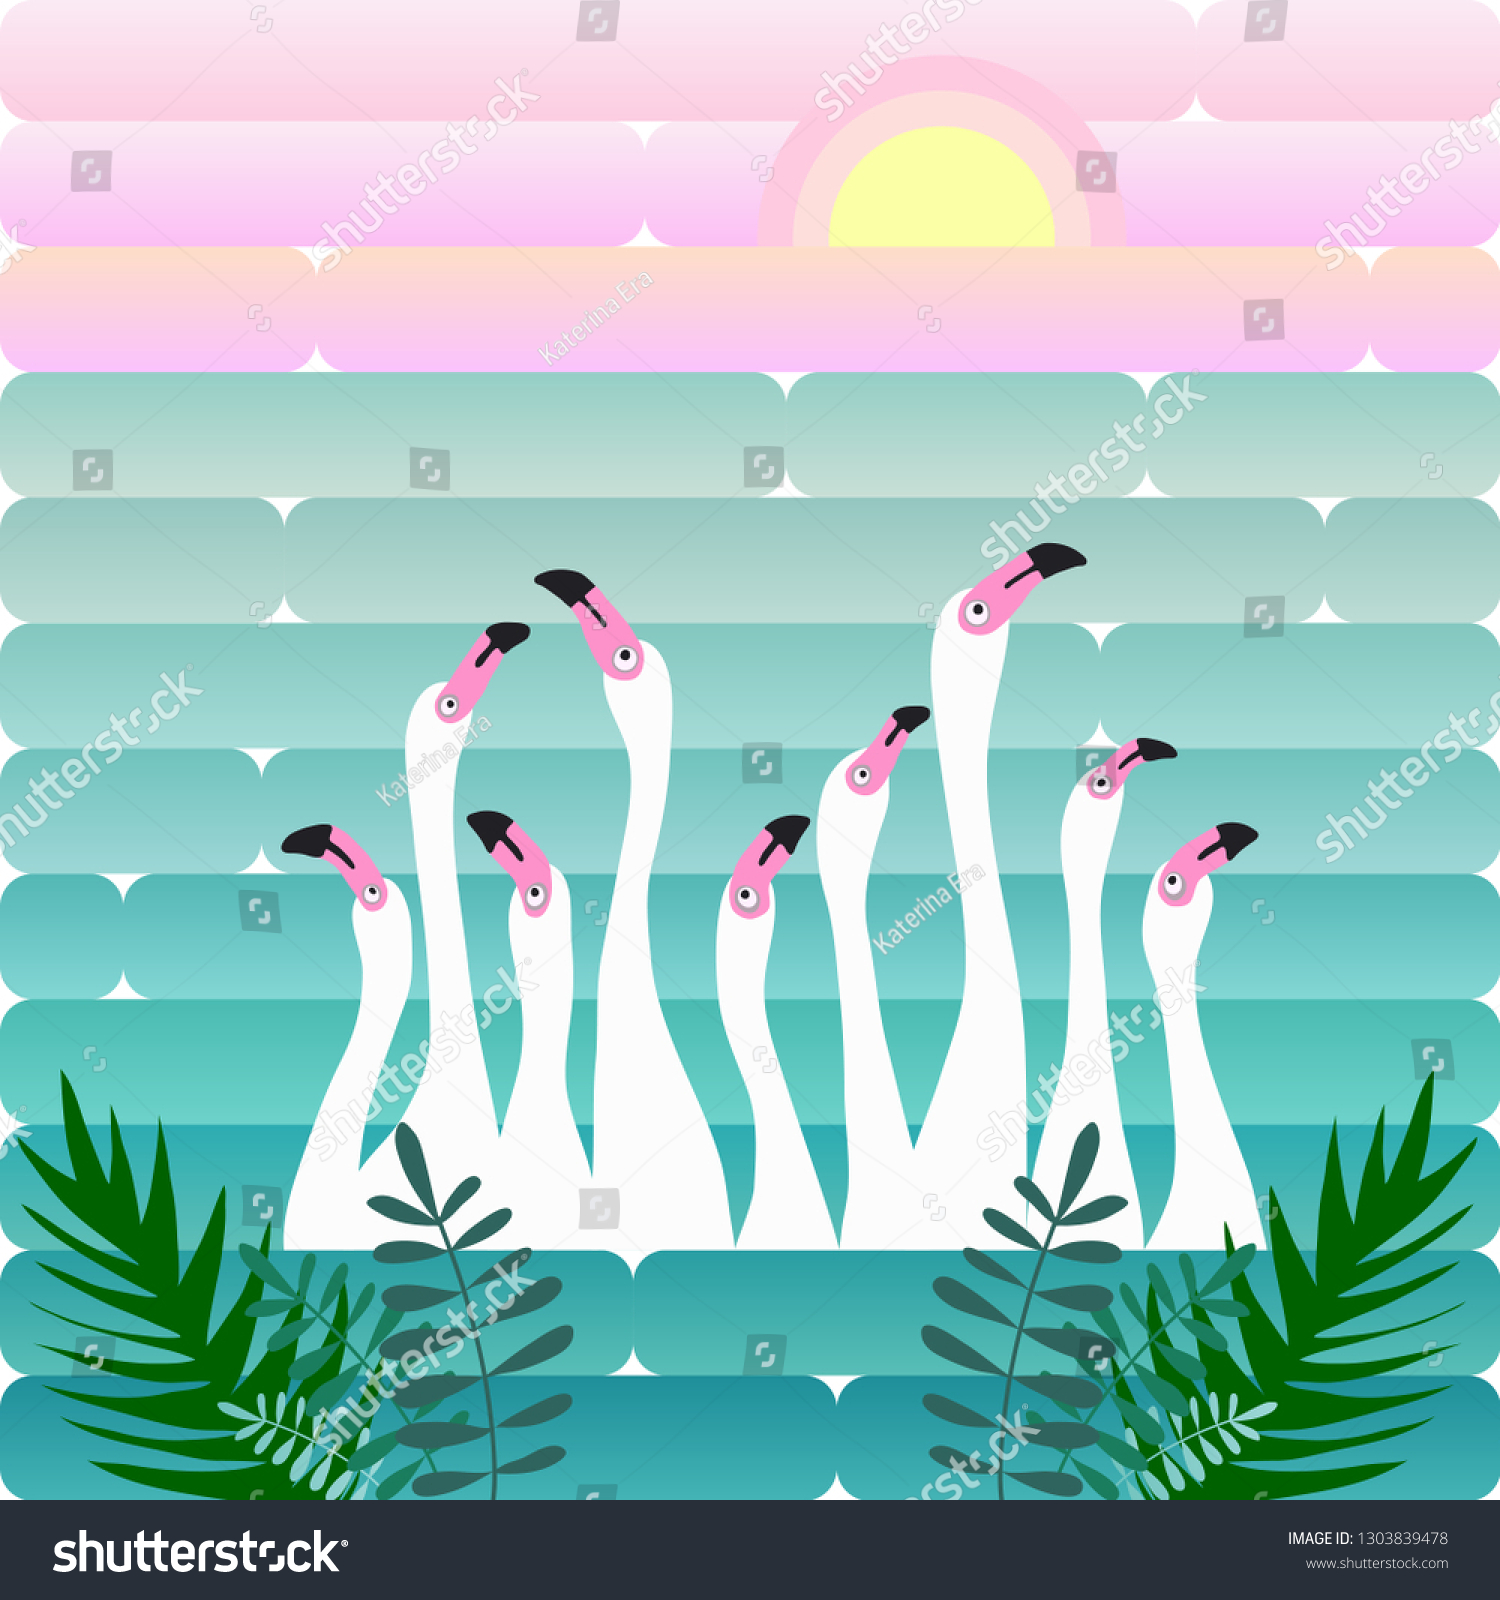 White Flamingos On Background Lake Sunrise Stock Vector Royalty Free 1303839478 A tropical garden should appear lush, this can be achieved through dense plantings of appropriate tropical plants have a very distinct appearance and color. shutterstock